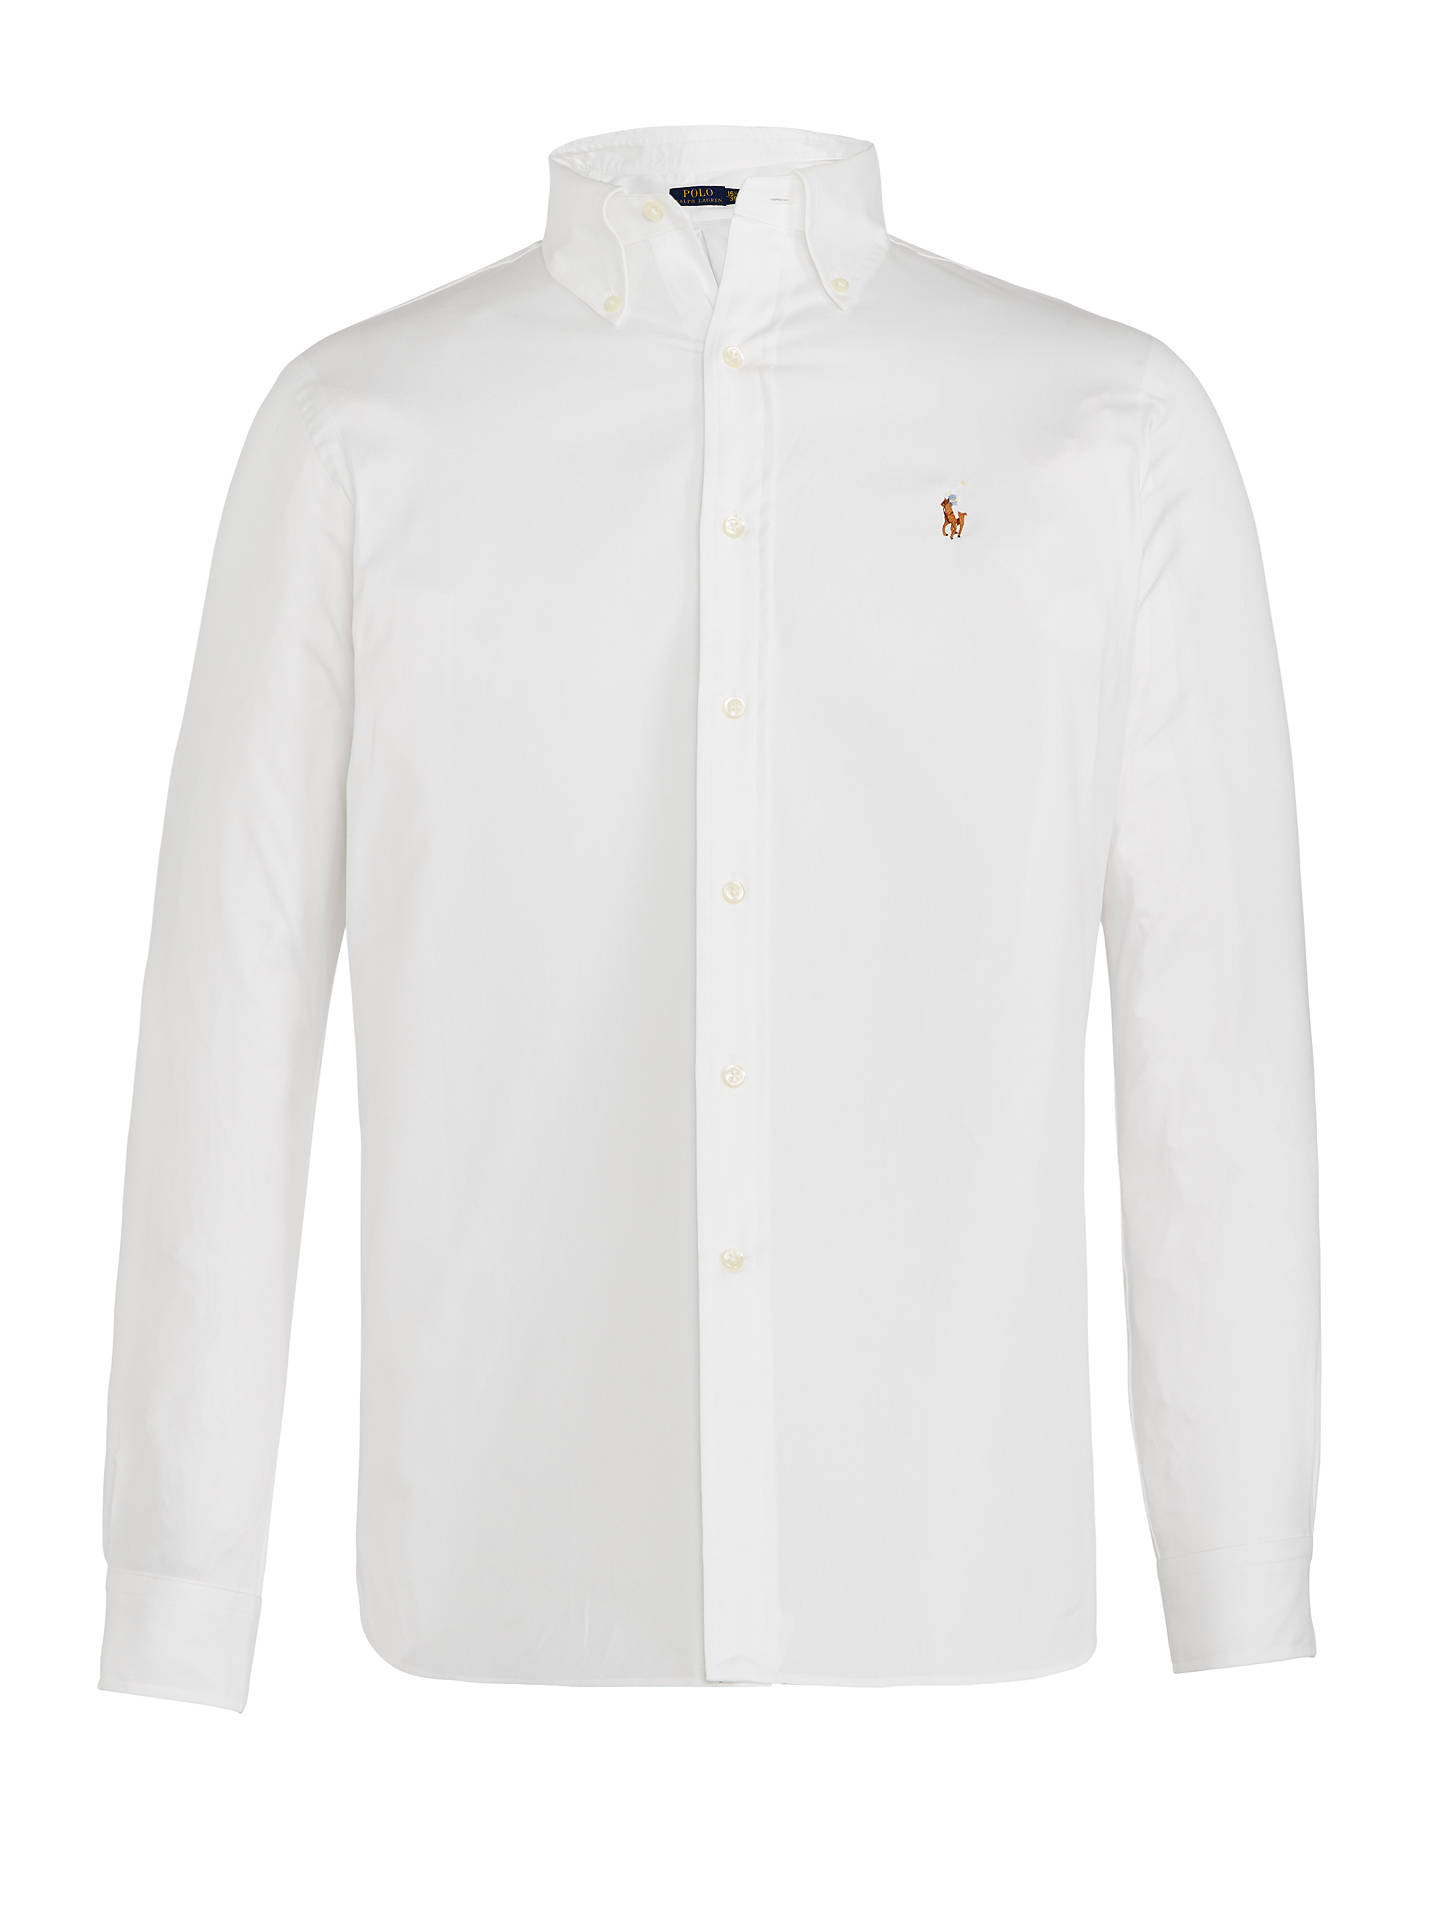 c5c9e6e34c07 Buy Polo Ralph Lauren Shirt Long Sleeve Shirt, White, 15 Online at  johnlewis.